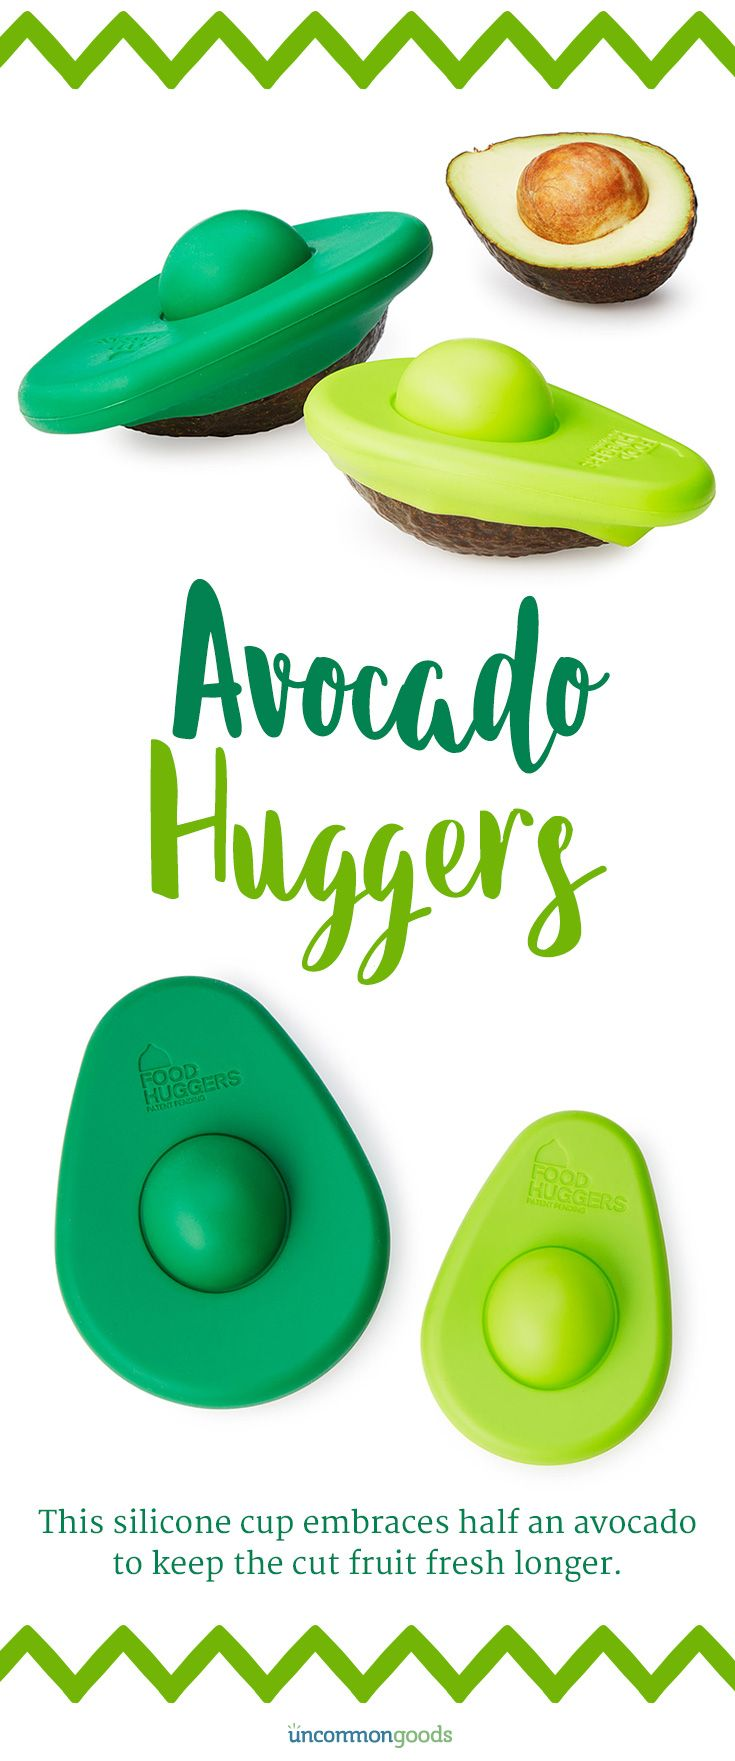 This silicone cup embraces half an avocado to keep the cut fruit fresh longer.